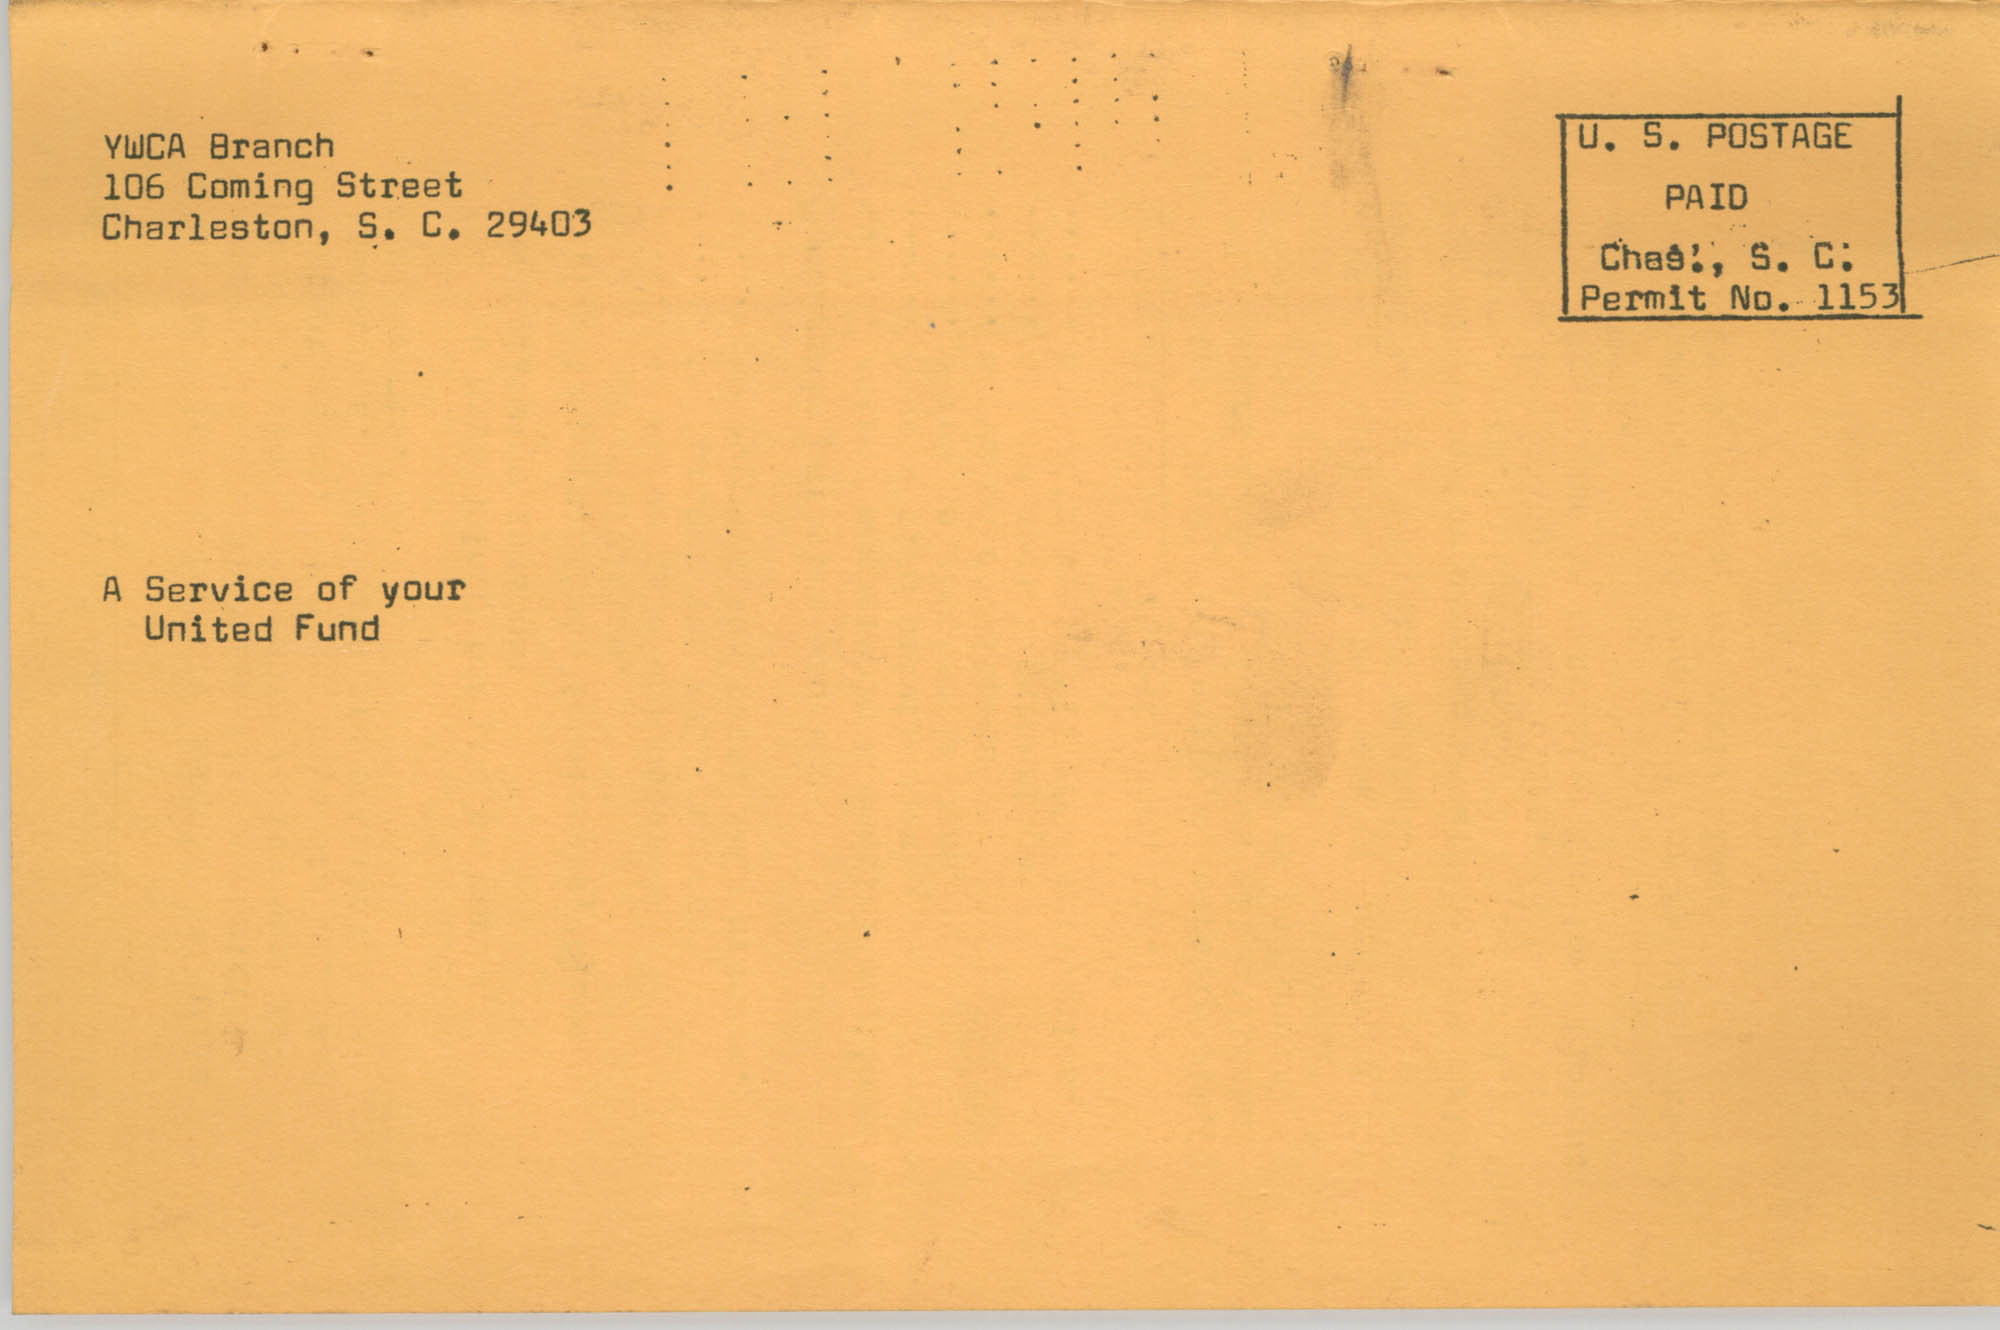 Coming Street Y.W.C.A. Fall Program, 1967, Back Cover